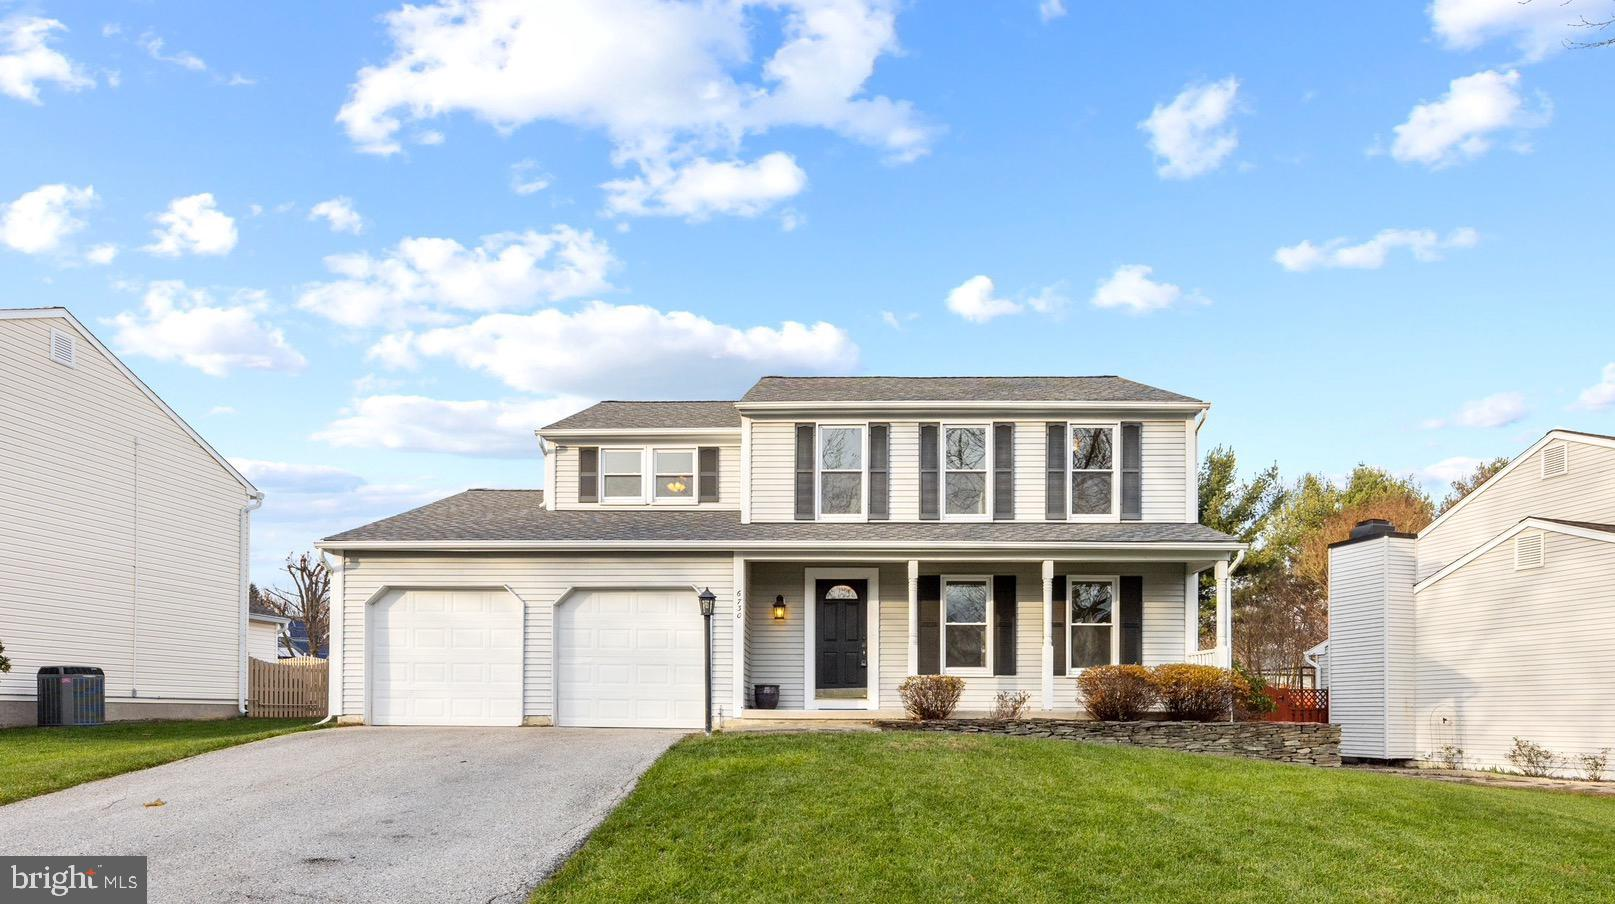 Welcome home to this beautifully updated, 4 bed, 2.5 bath colonial perfectly located in the heart of